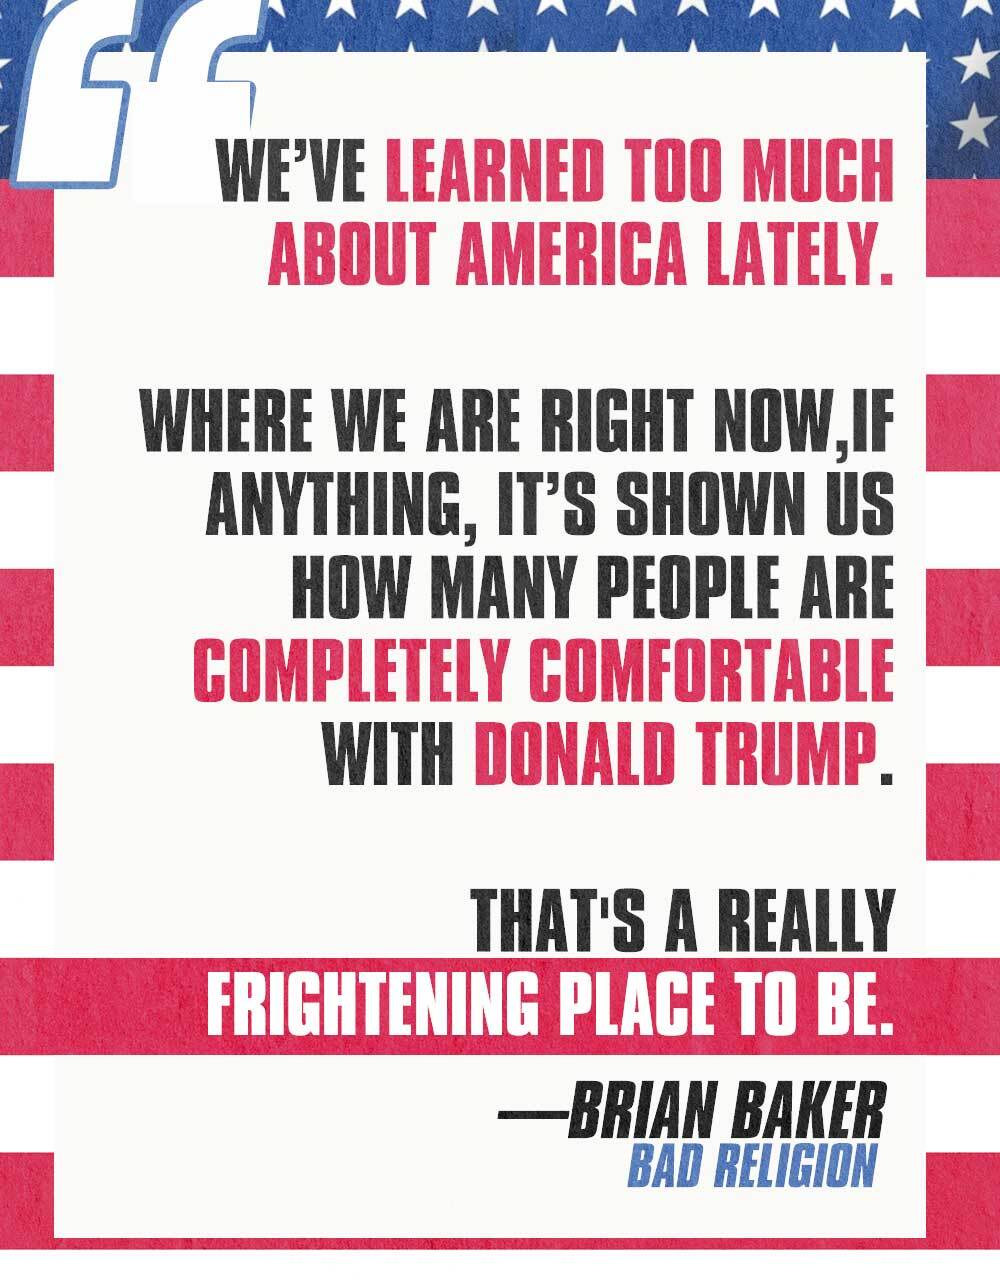 brian baker pull quote